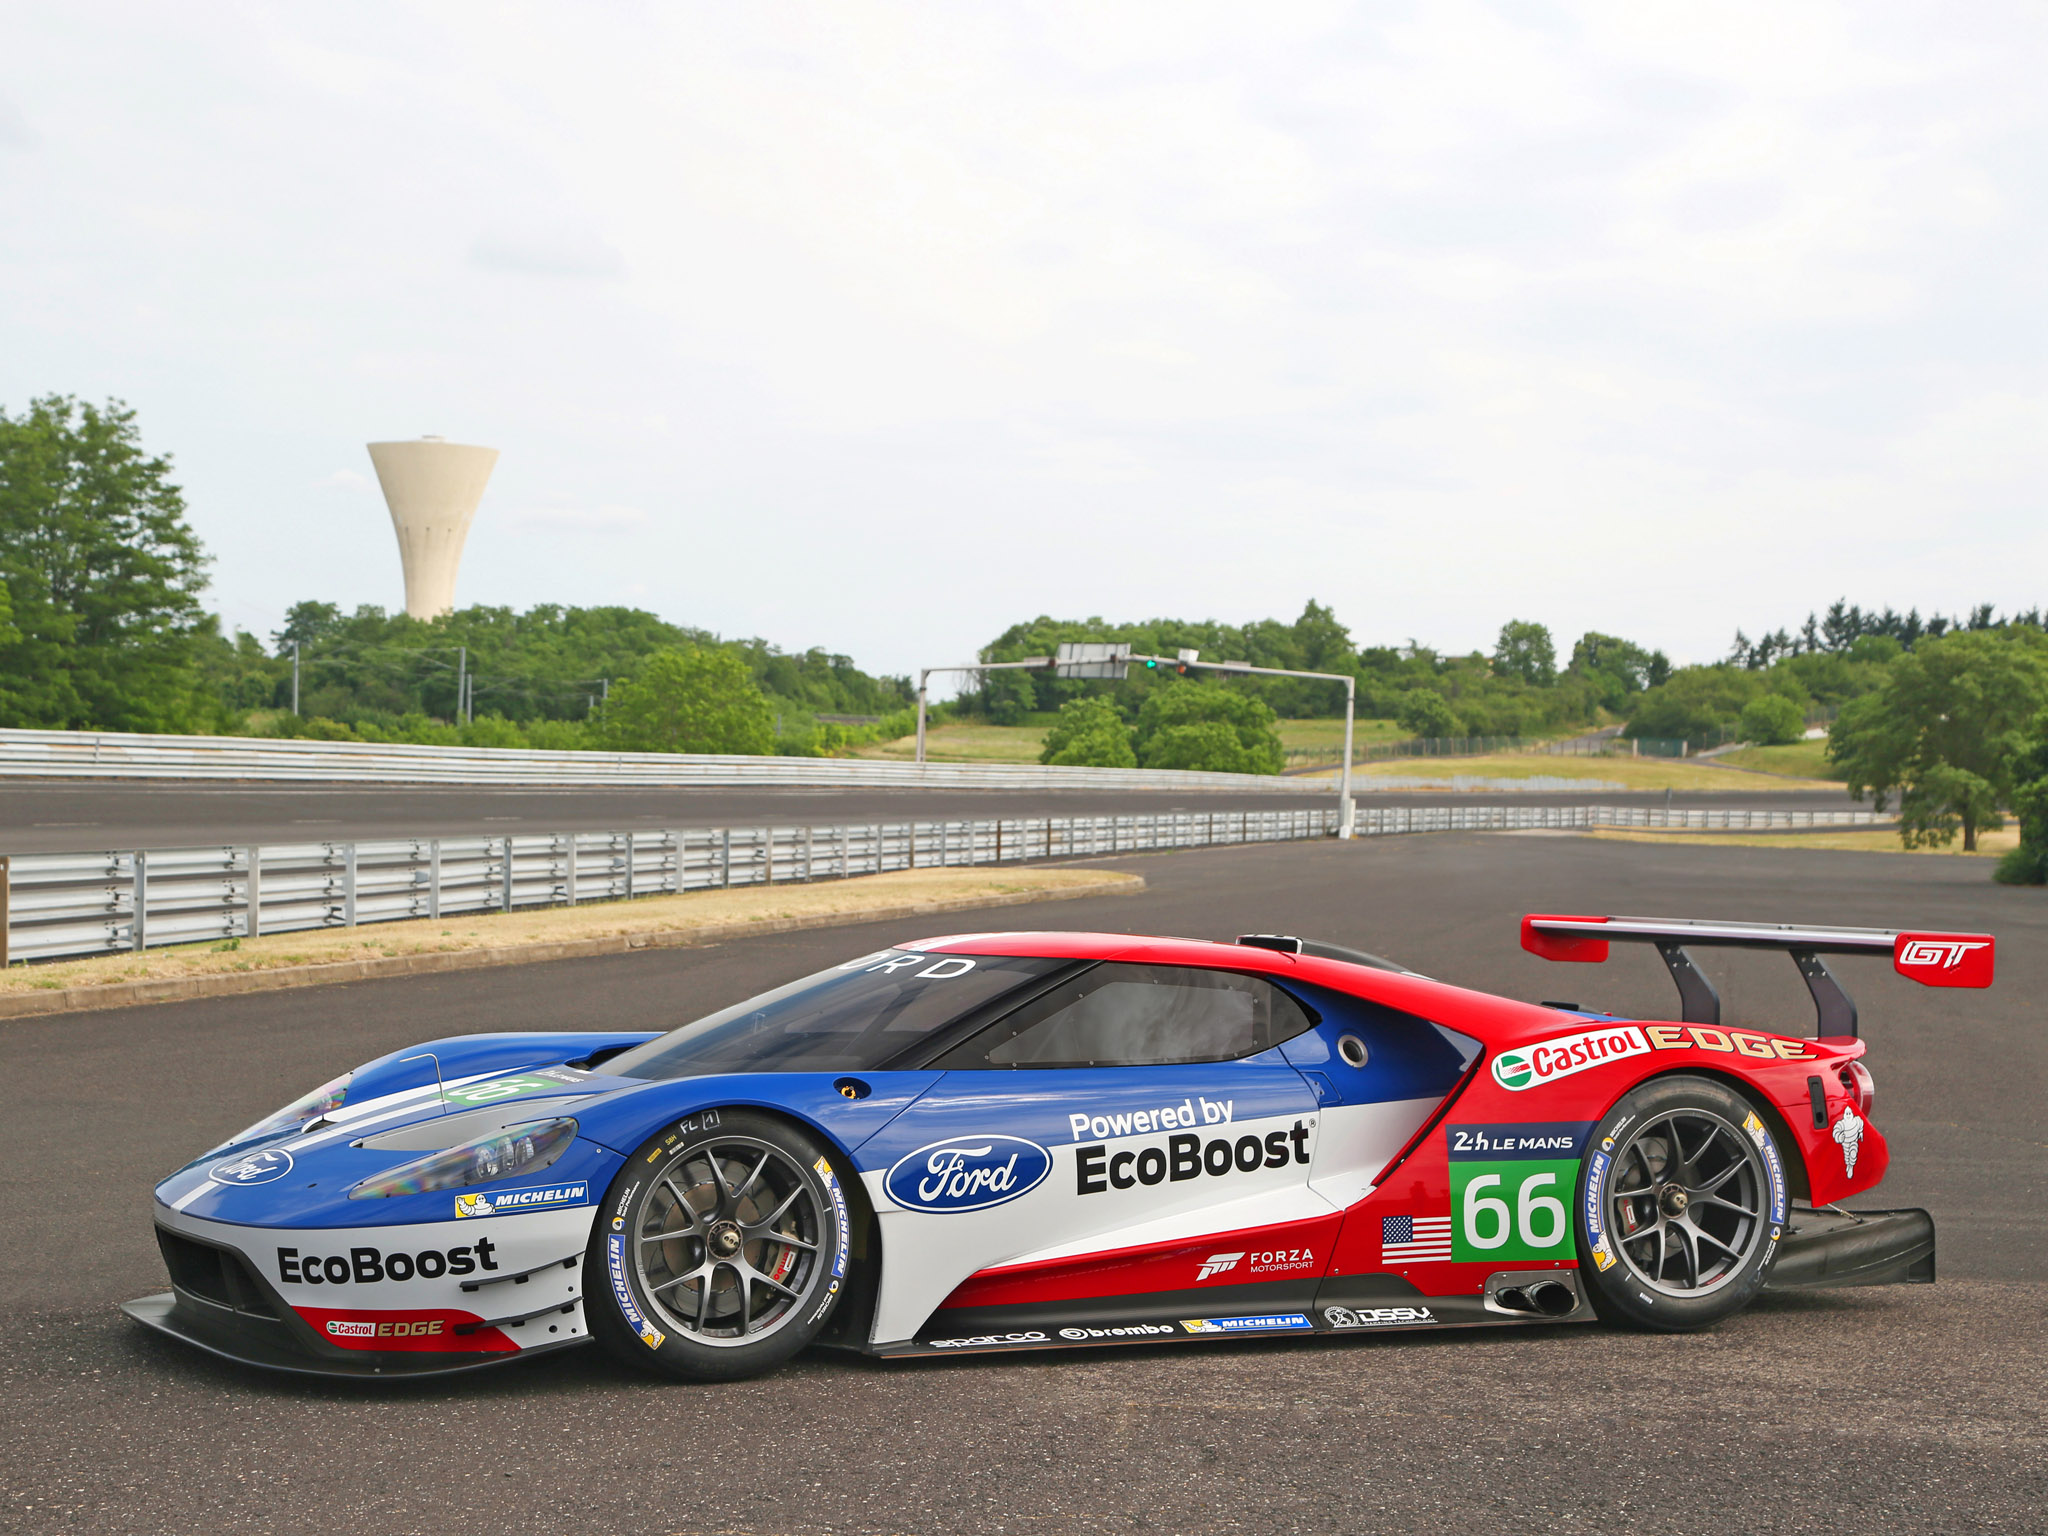 ford_gt-race-car-2016_r8_jpg.jpg